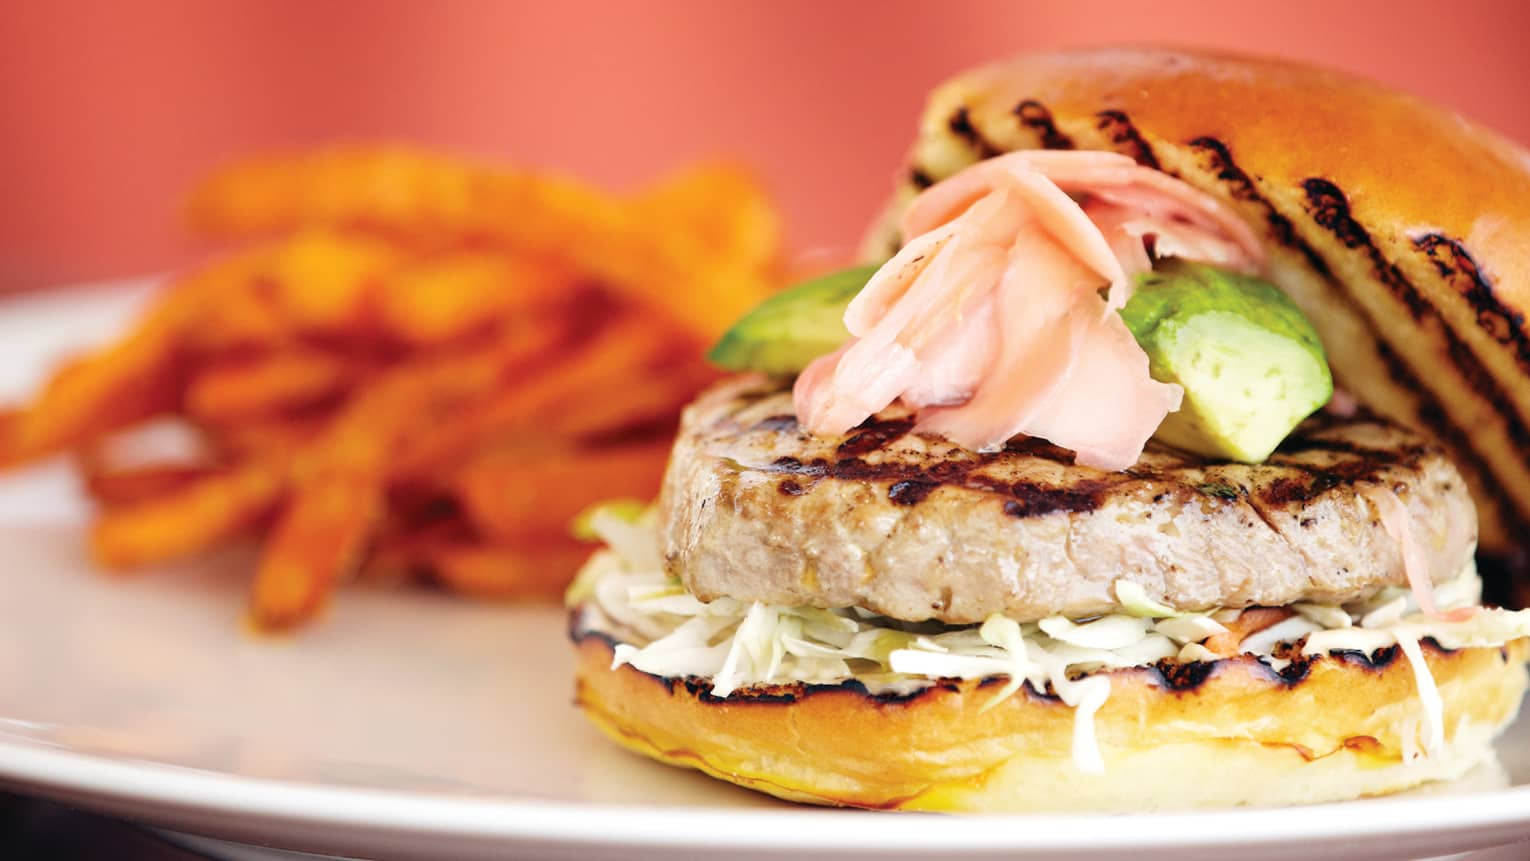 Ahi tuna burger topped with avocado, pickled ginger, side of sweet potato fries